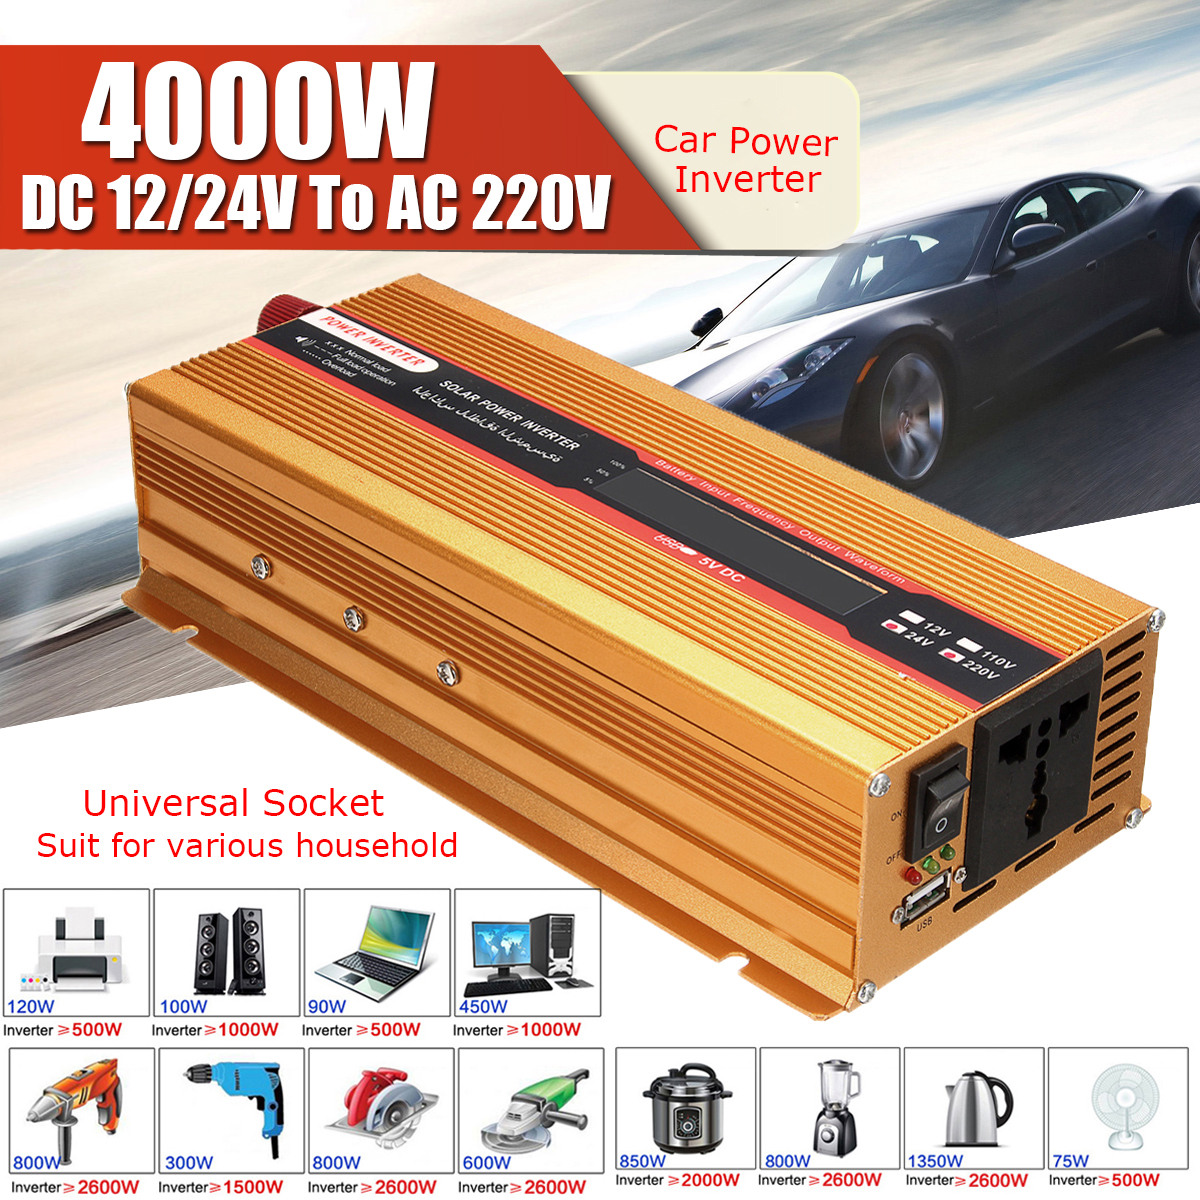 4000W 12/24V To AC 220/110V USB Modified Sine Wave Converter Car Power Inverter Voltage Transformer for Various Appliances peak 4000w 12 24v to ac 220 110v car power inverter usb modified sine wave converter voltage transformer for various appliances